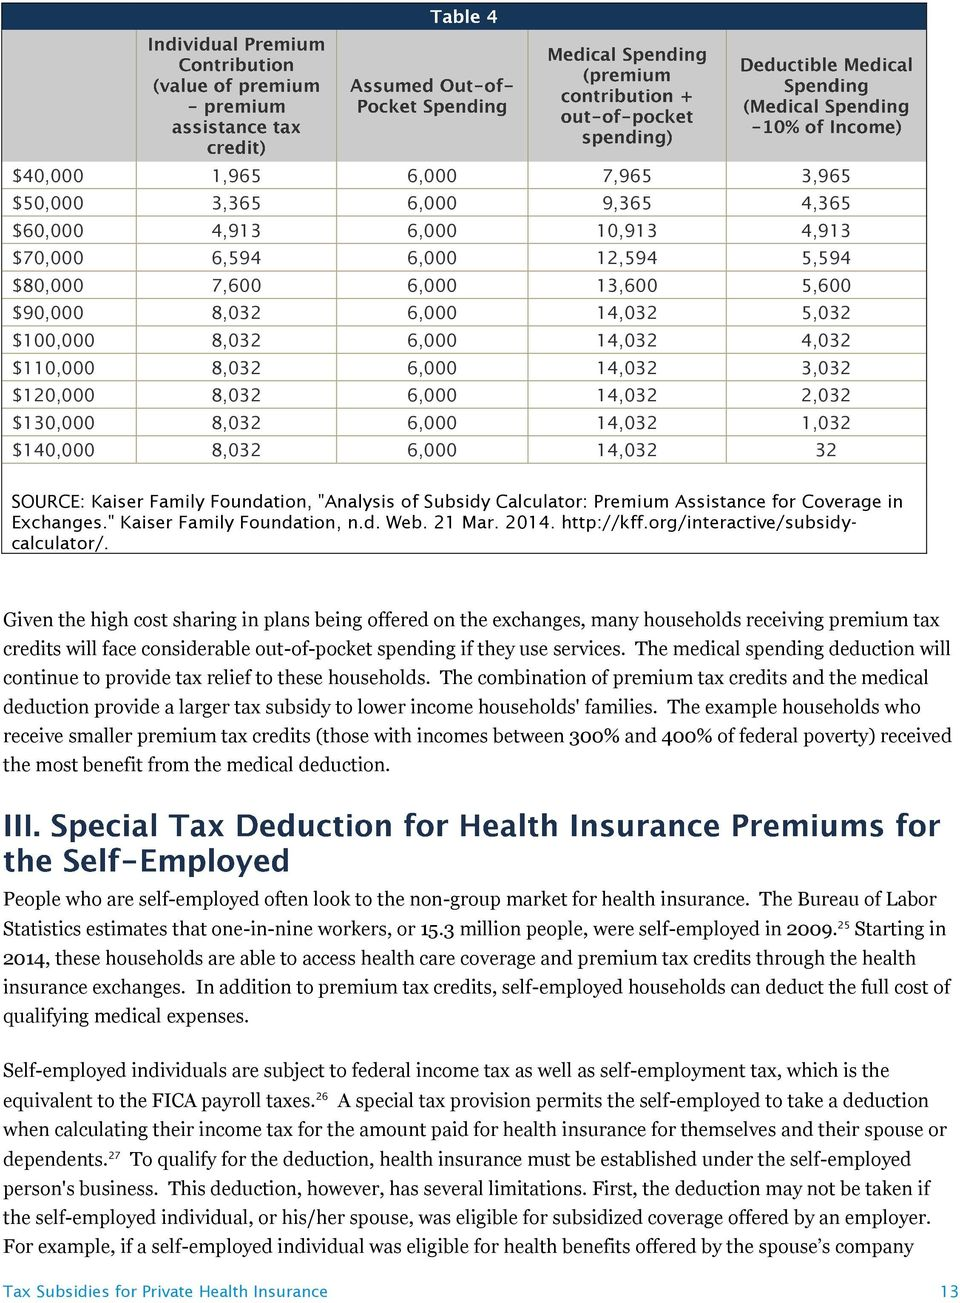 "Foundation, ""Analysis of Subsidy Calculator: Premium Assistance for Coverage in Exchanges."" Kaiser Family Foundation, n.d. Web. 21 Mar. 2014. http://kff.org/interactive/subsidycalculator/."